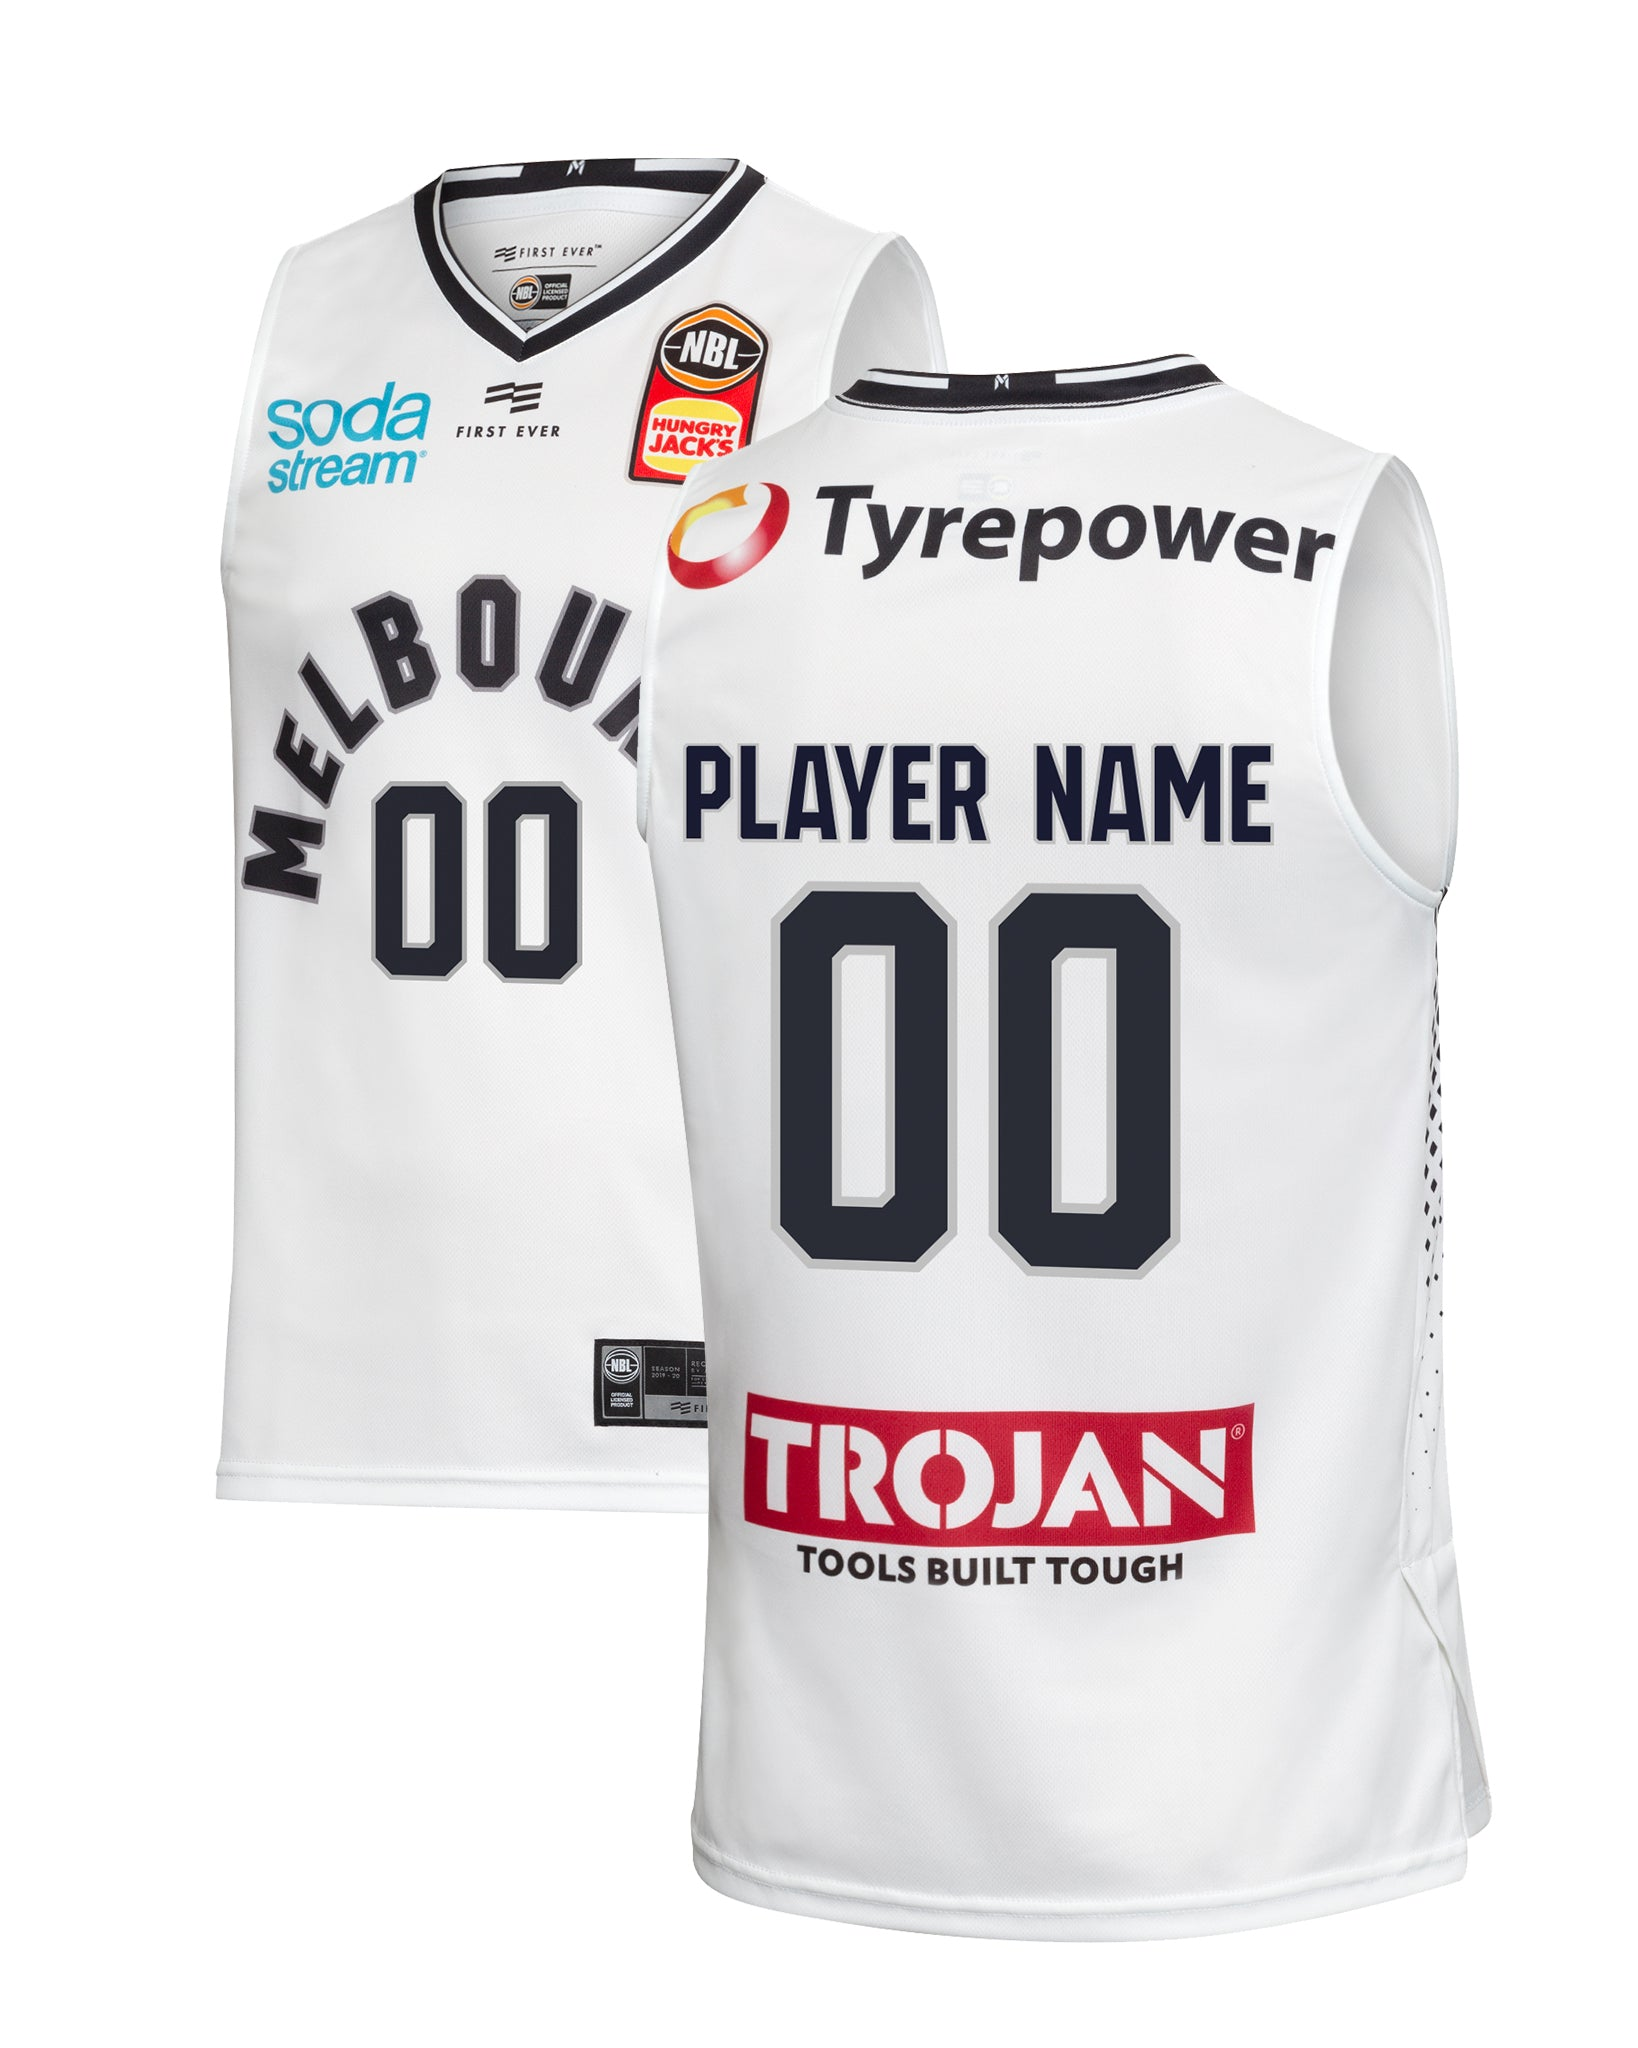 Melbourne United 19/20 Authentic Away Jersey - Other Players